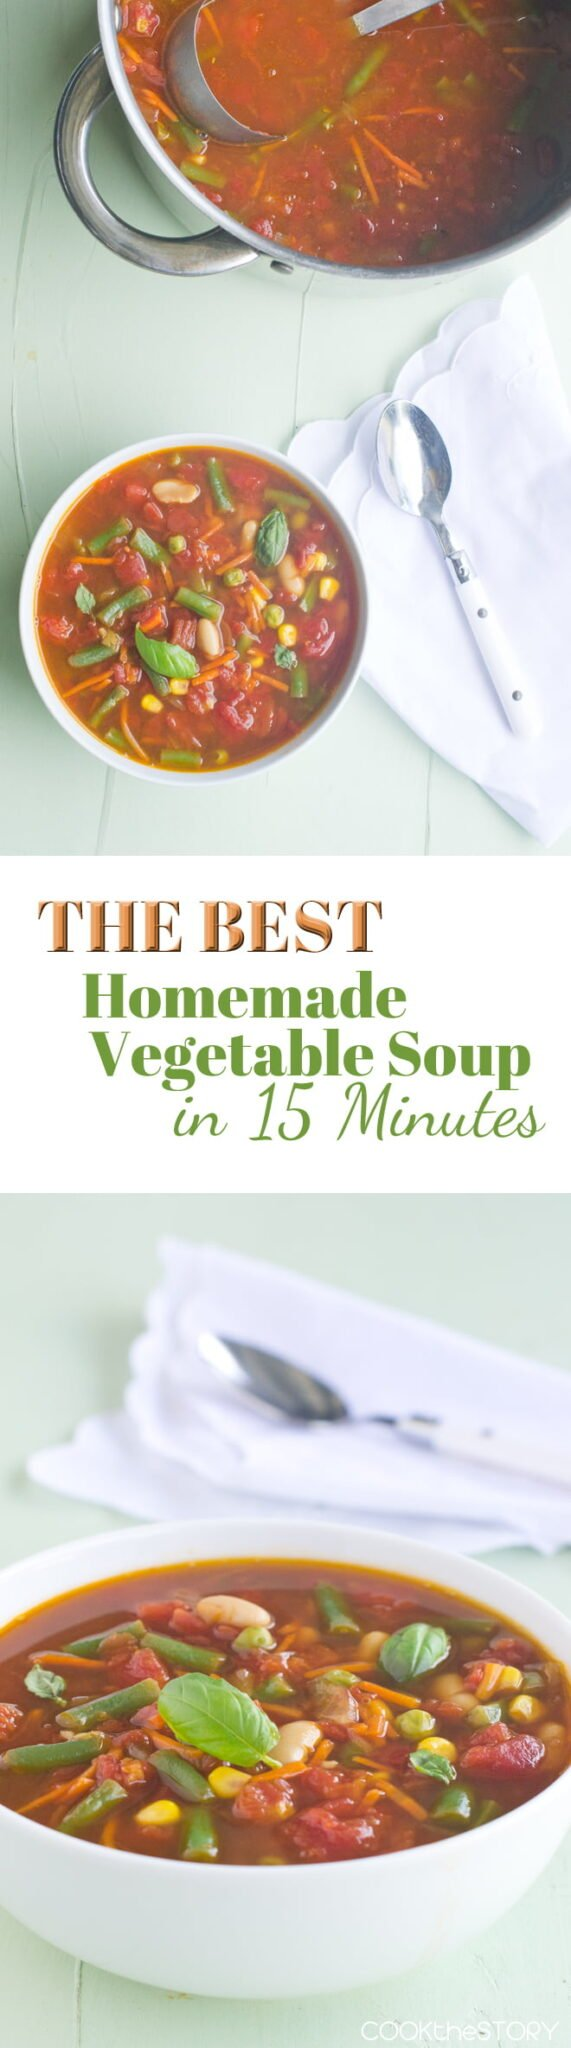 Easy Vegetable Soup in 15 Minutes